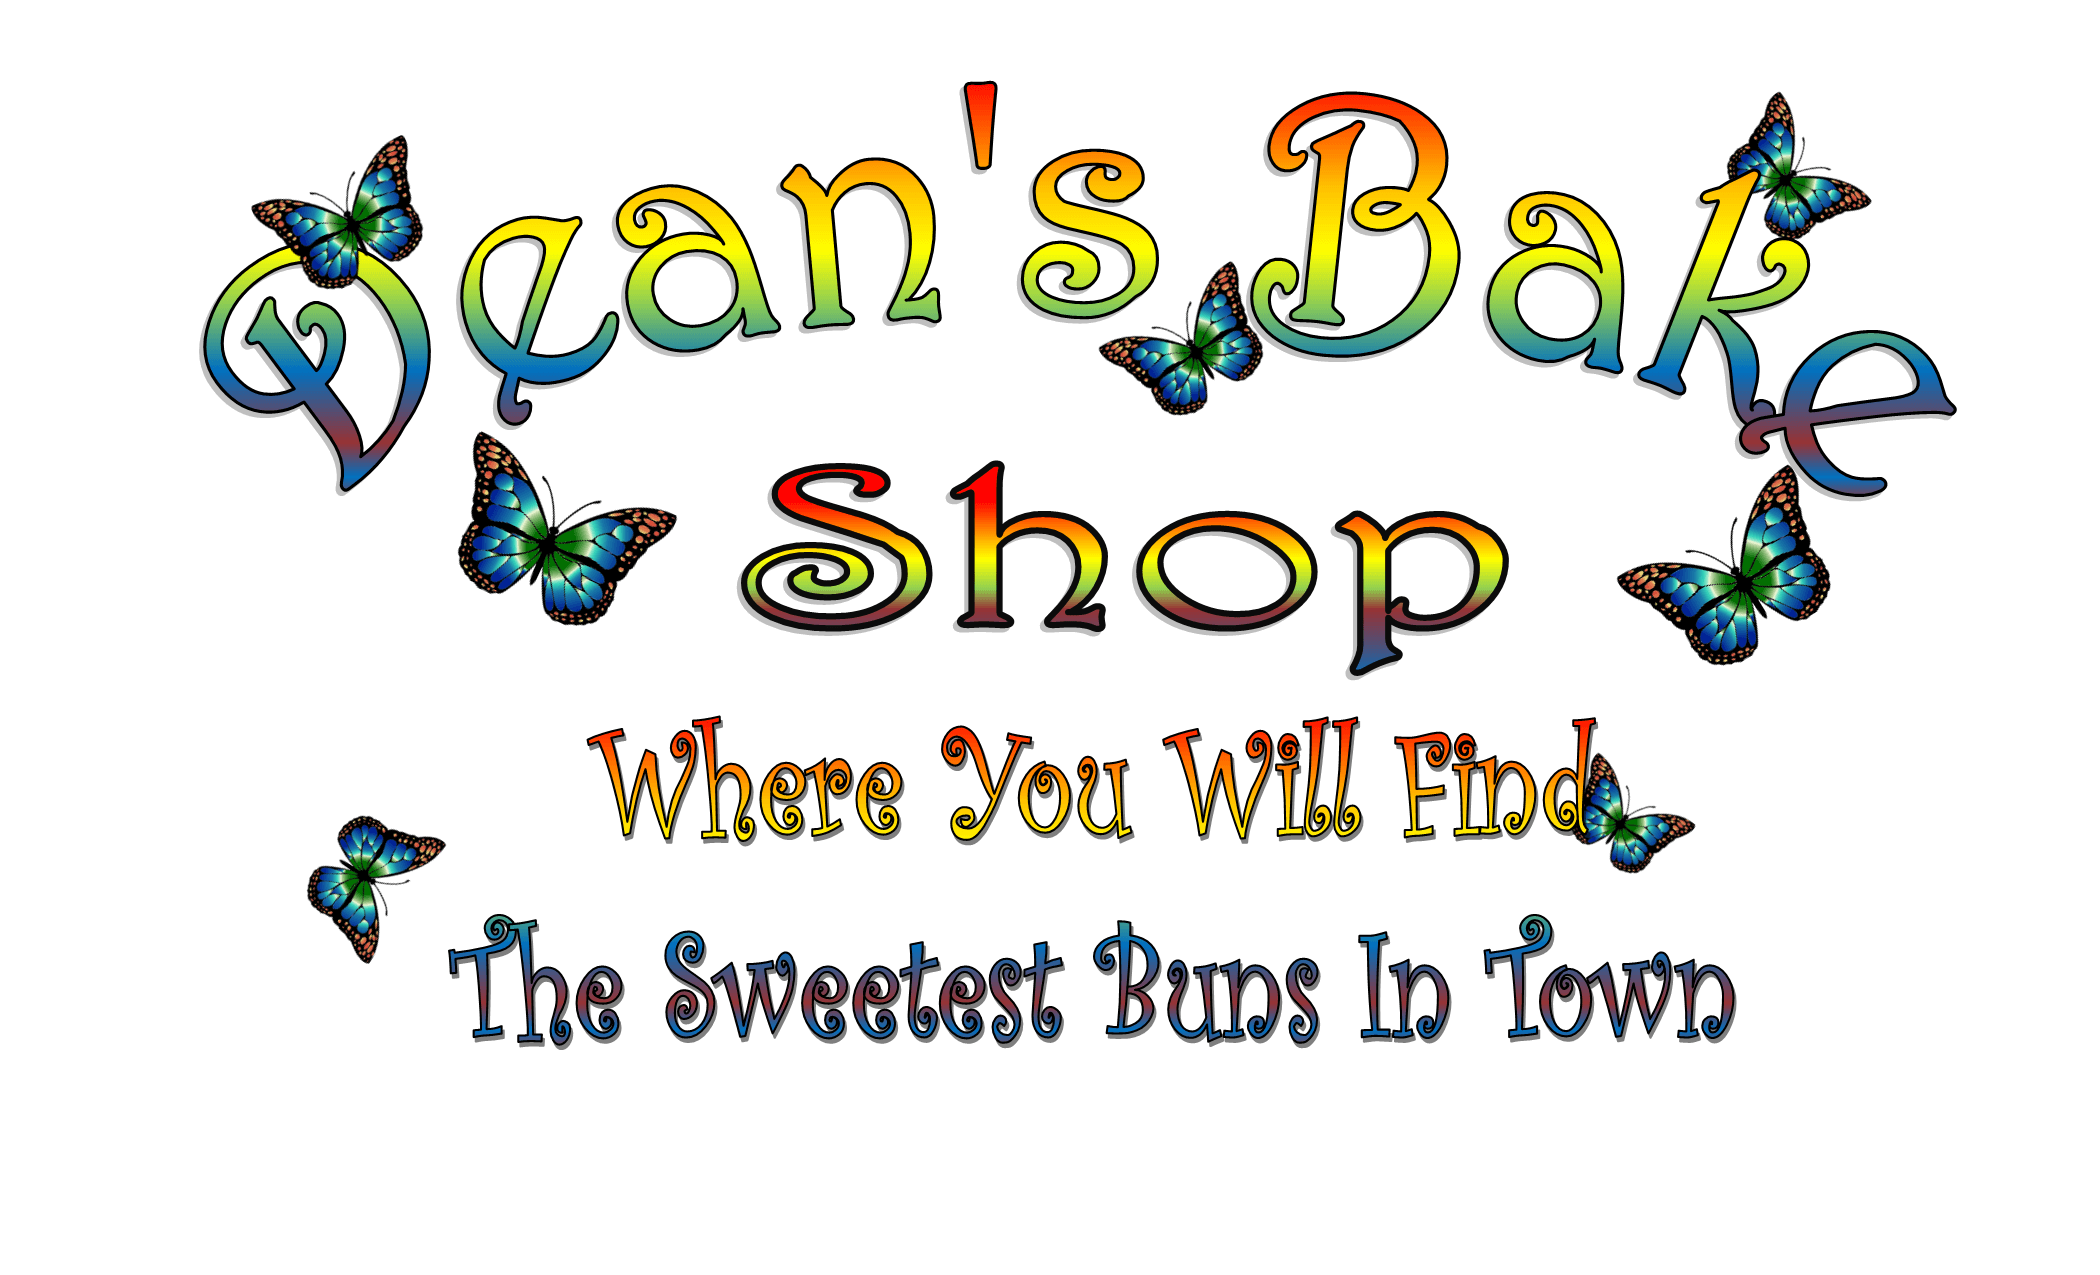 Sweet Buns Shop